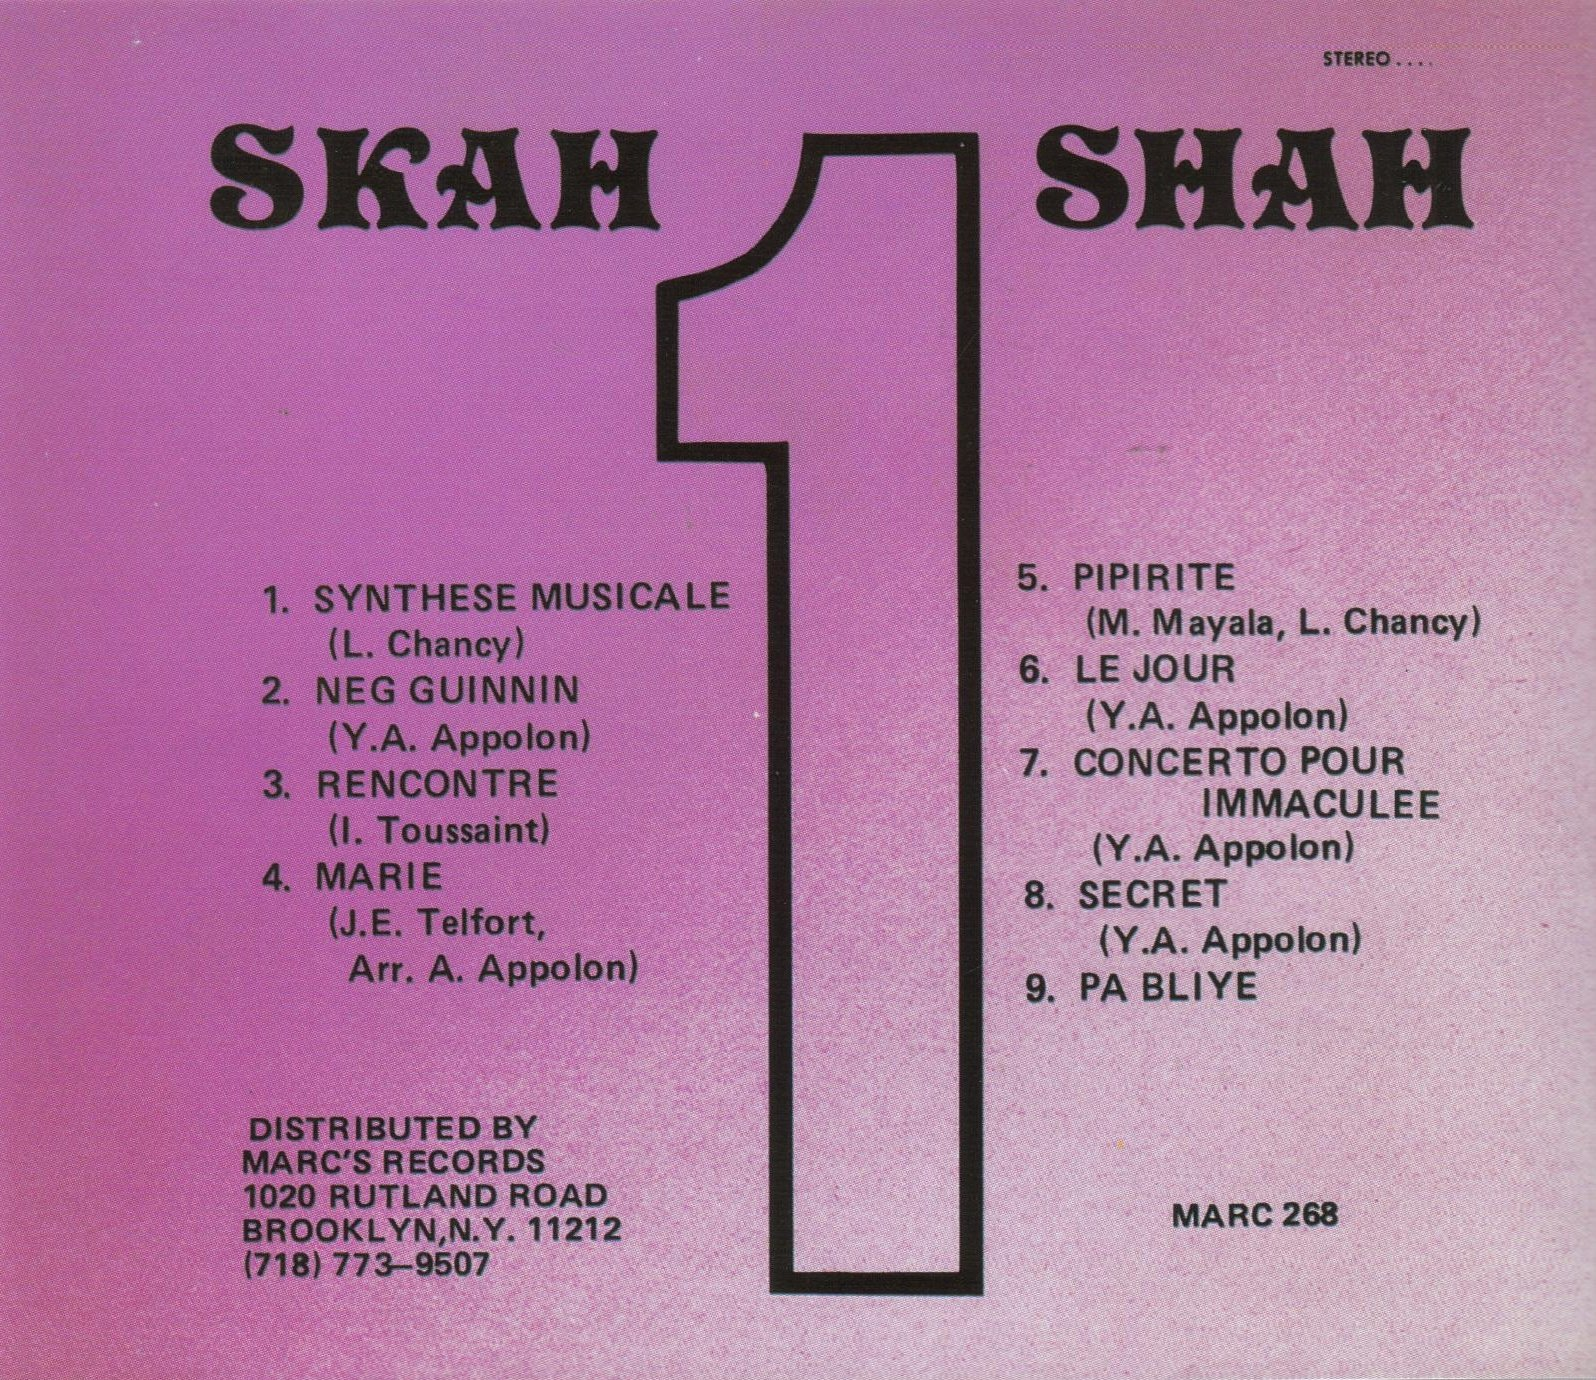 Skah-Shah #1 by Marc Records